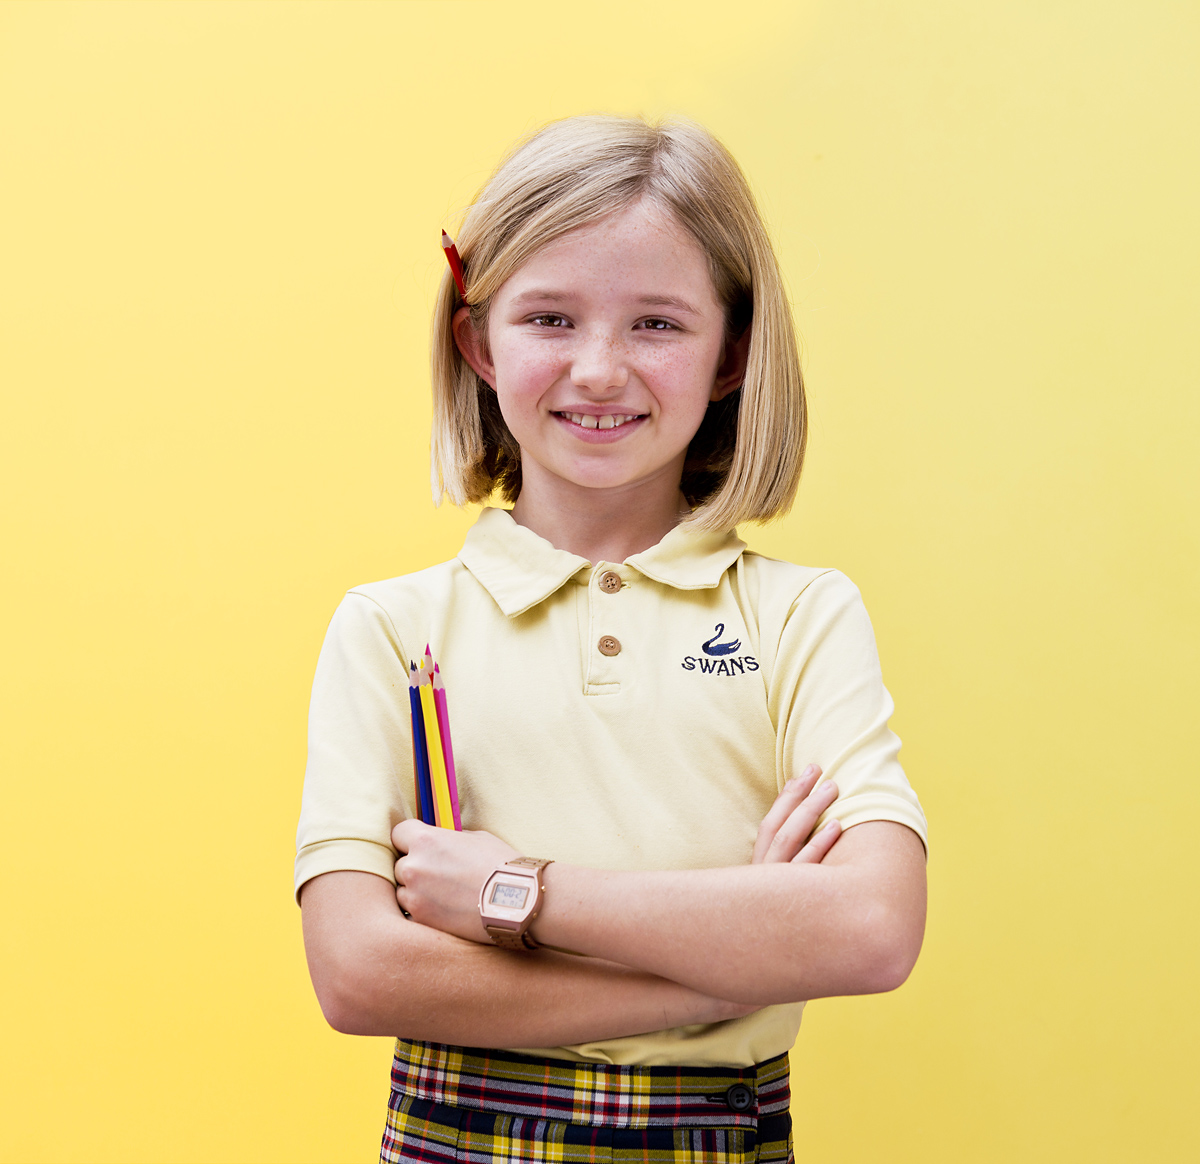 Primary school, Key Stage 1, School Photography, Educational Photographs, students Spain, Marbella kids, Aloha School Marbella, Swans International School, Marbella Schools, Top school in Marbella, Primary teacher, Swans Marbella, group classes, small school class groups